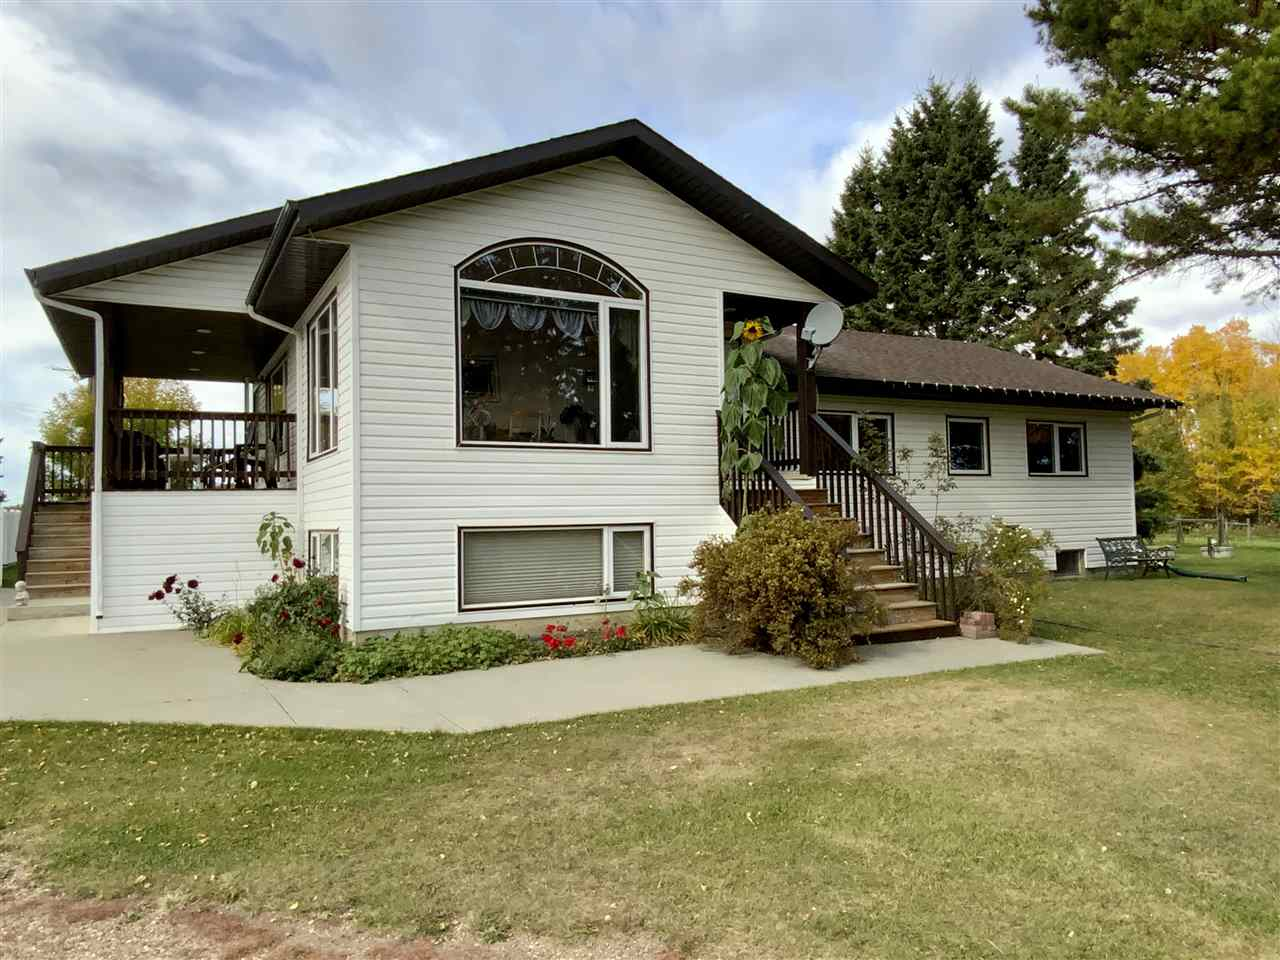 FEATURED LISTING: 472080 RGE RD 245 Rural Wetaskiwin County